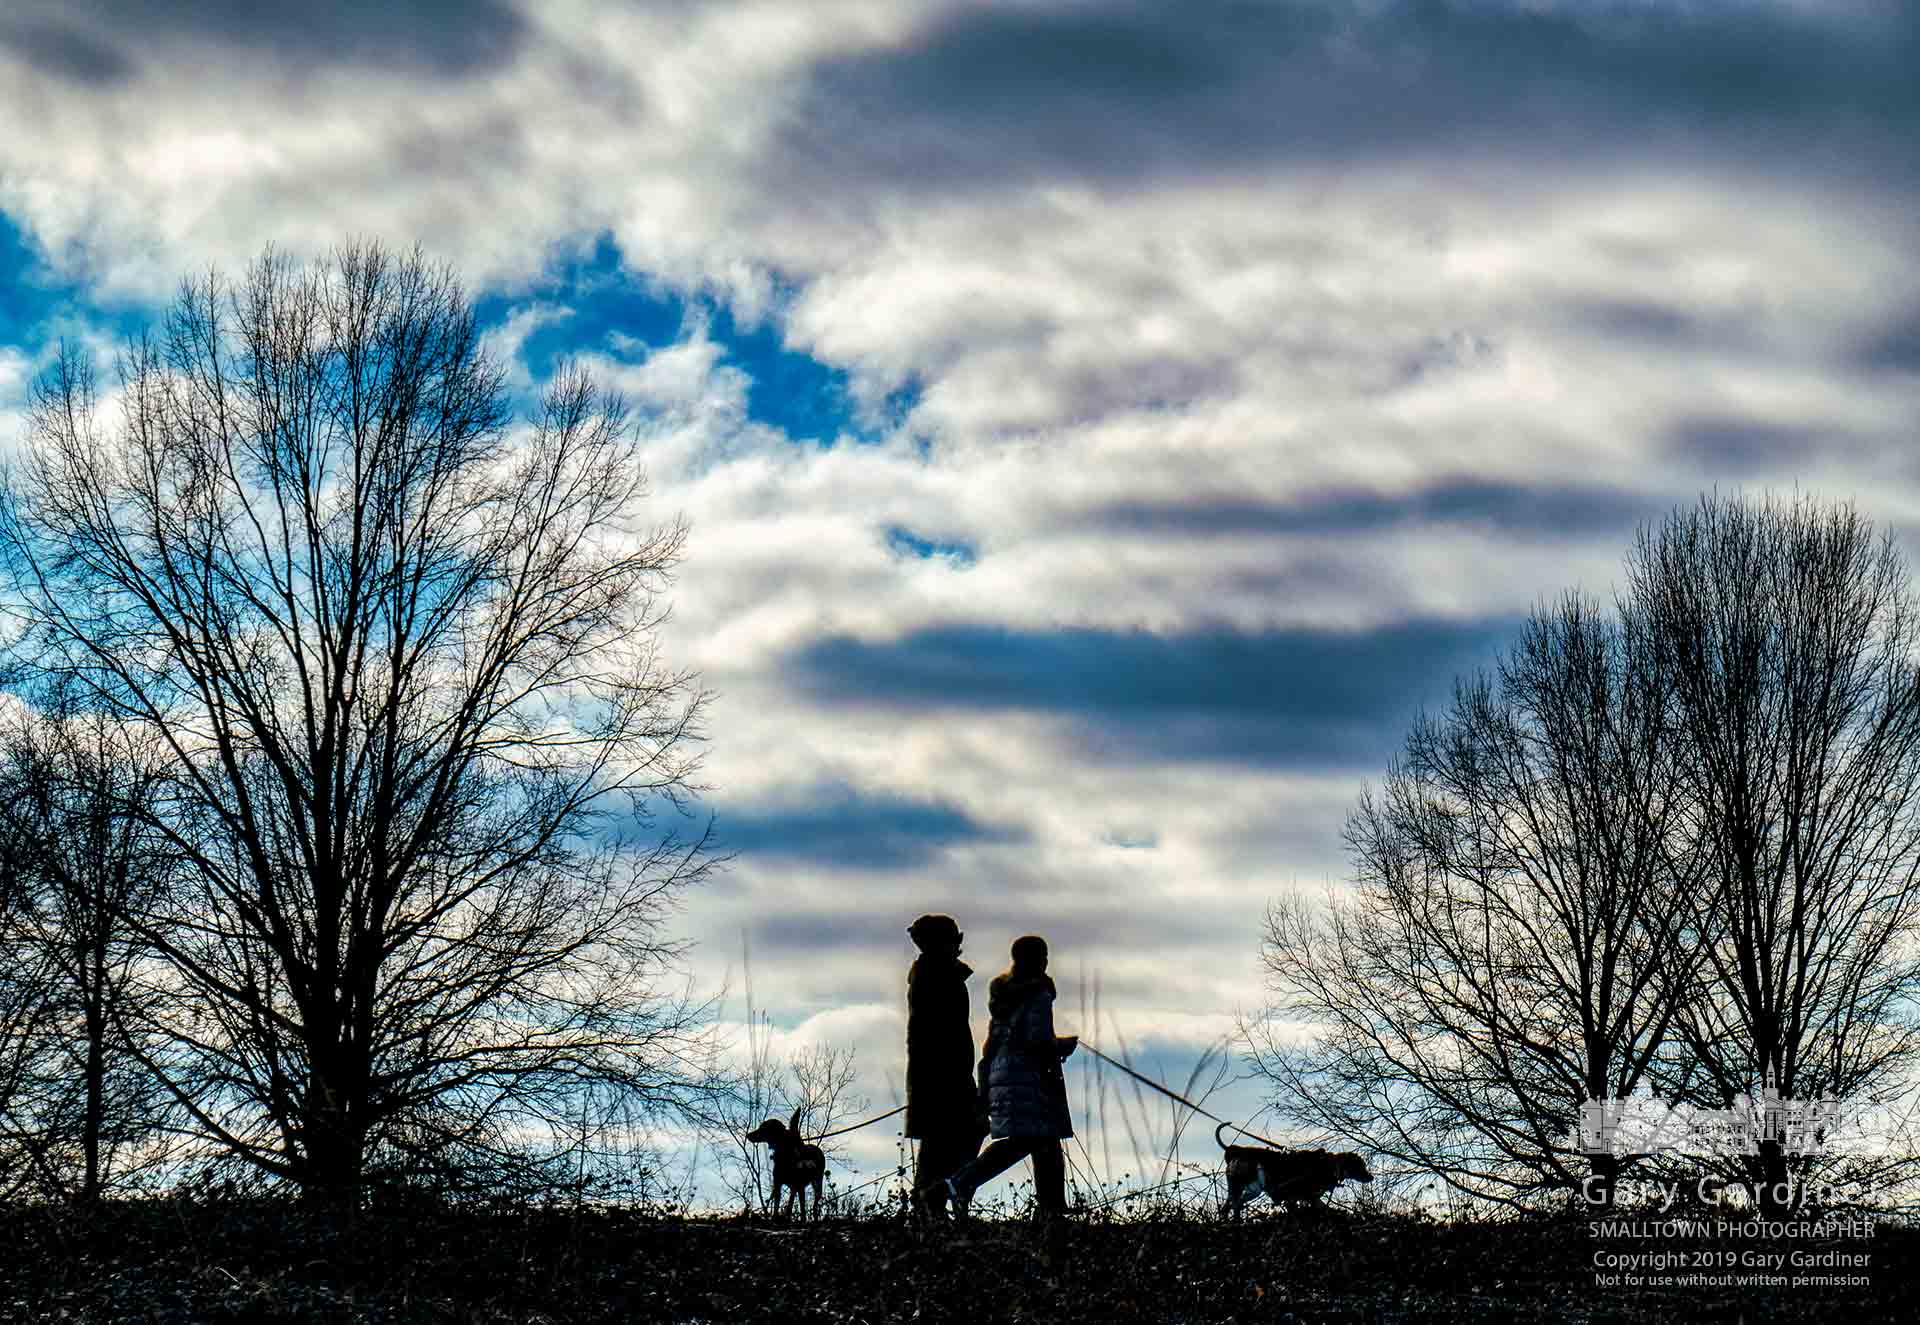 A pair of dog owners walk their charges along one of the paths in Sharon Woods Metro Park during the afternoon group dog walk. My Final Photo for Feb. 16, 2019.